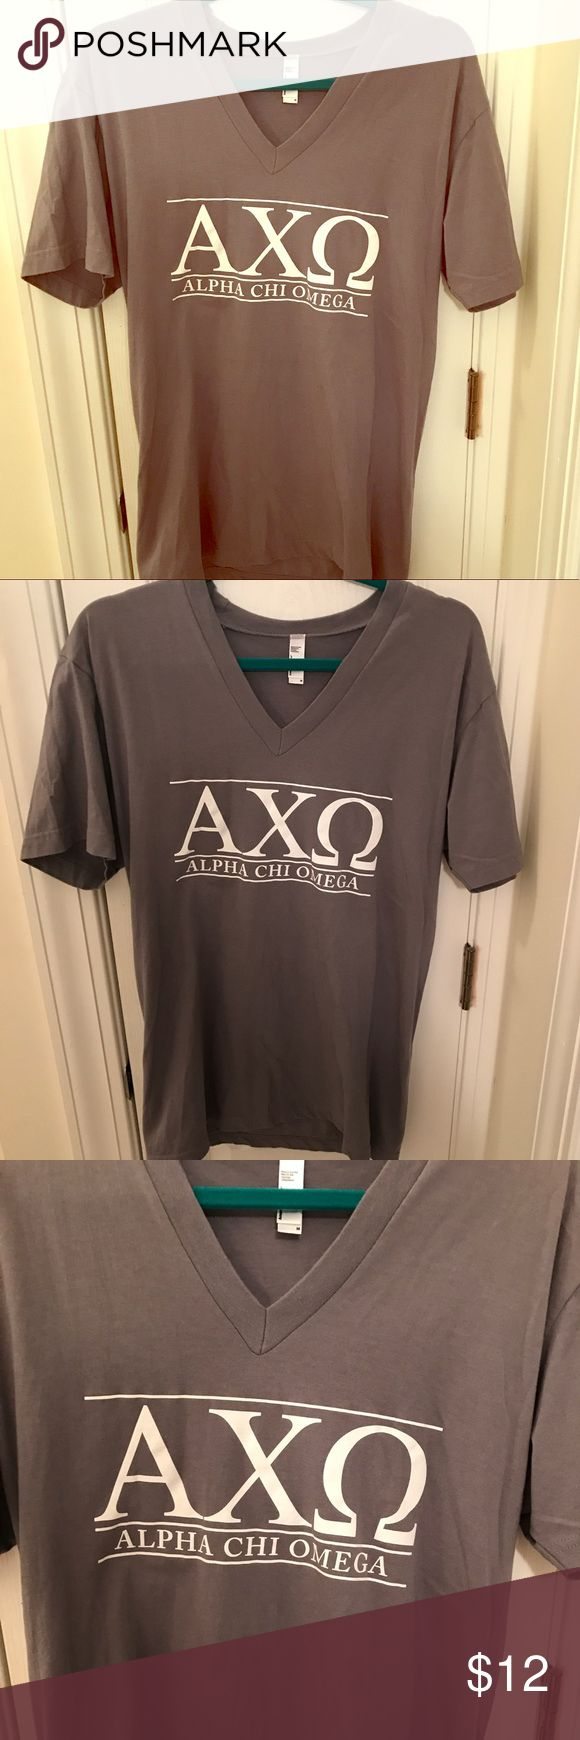 Gray alpha chi omega American apparel t shirt M American apparel gray alpha chi omega t shirt with white lettering only worn once for recruitment great fit to wear with leggings! Size medium perfect gift for a little or big!! American Apparel Tops Tees - Short Sleeve